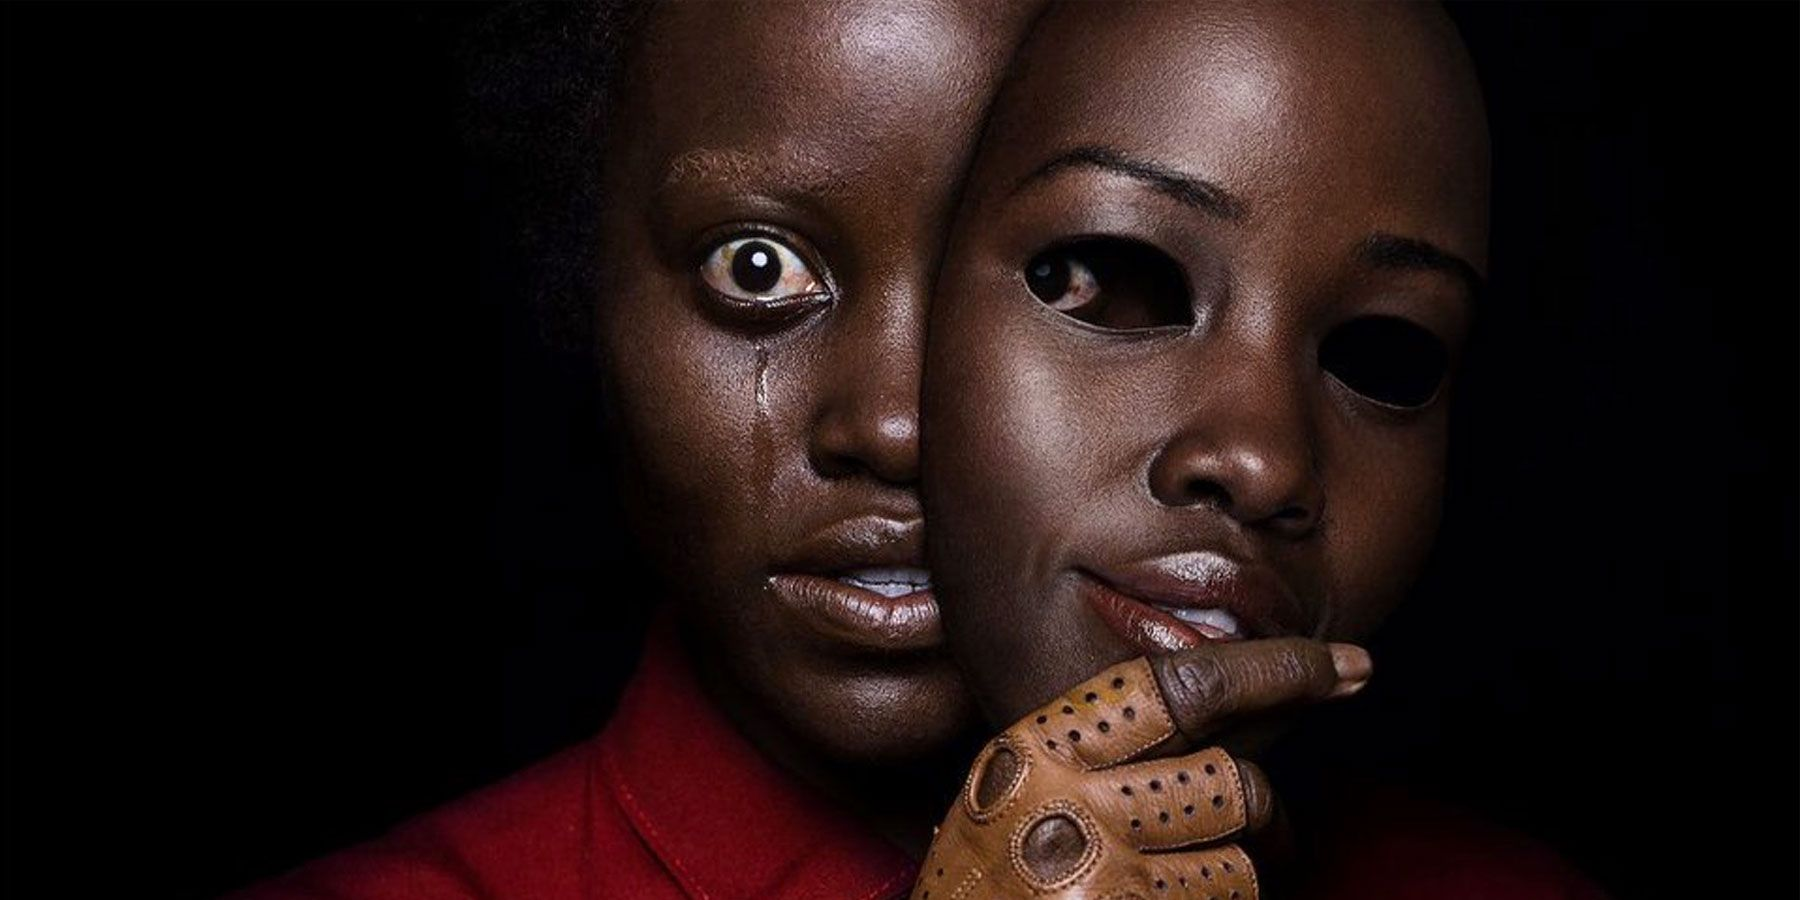 James Wan, Jordan Peele and the New Golden Age of Hollywood Horror